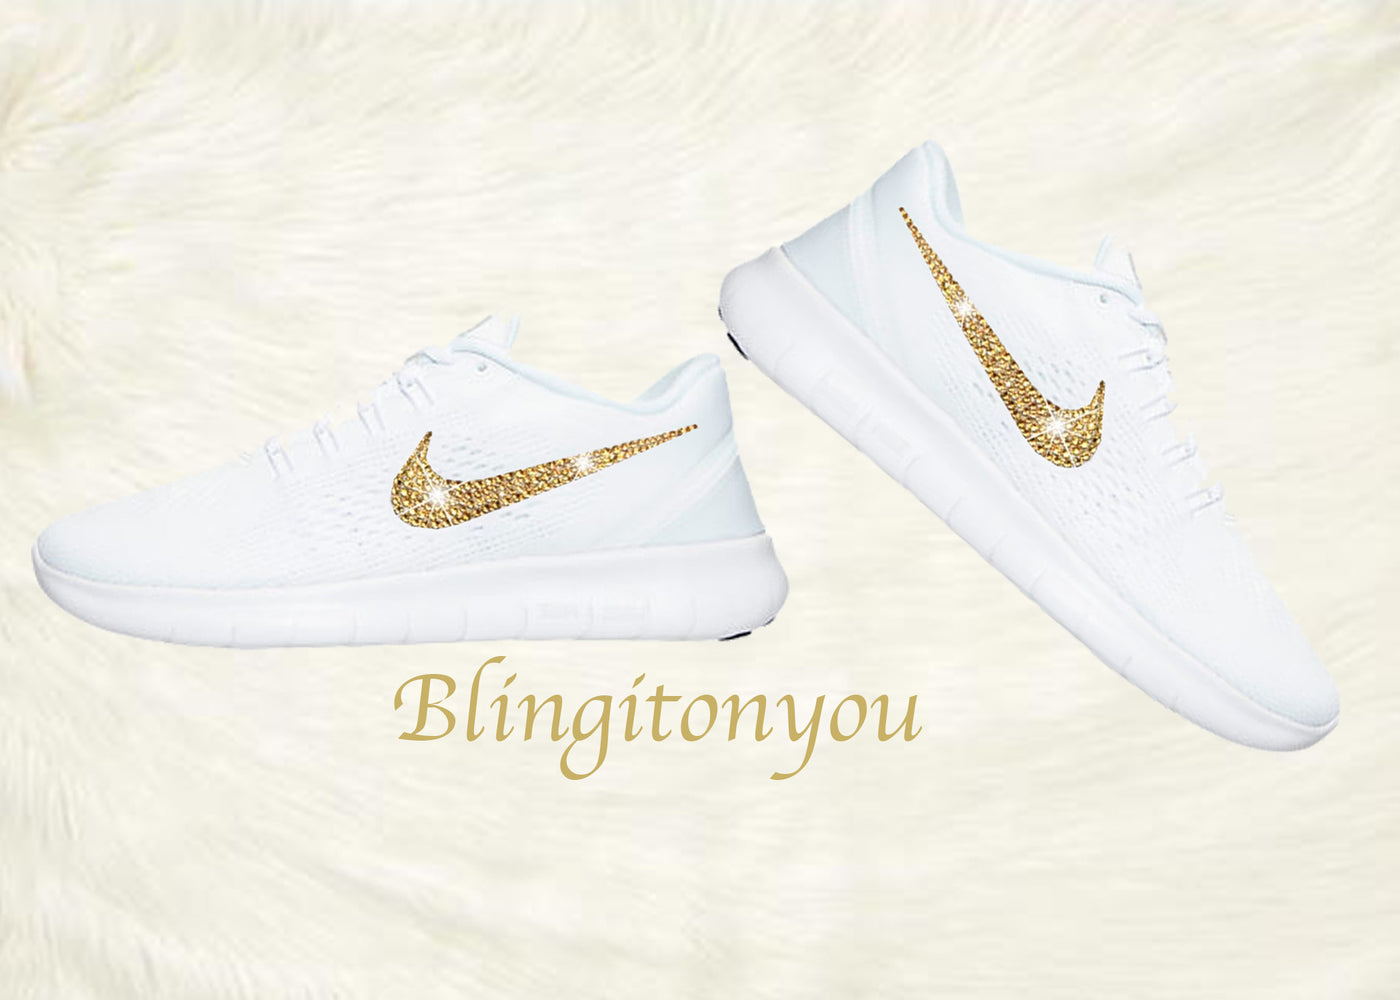 b94471c481e2b Swarovski Nike Free RN Running Shoes Blinged Out with Gold Swarovski  Crystals - Bling Nike Women's Free RN with Gold Swarovski Crystals